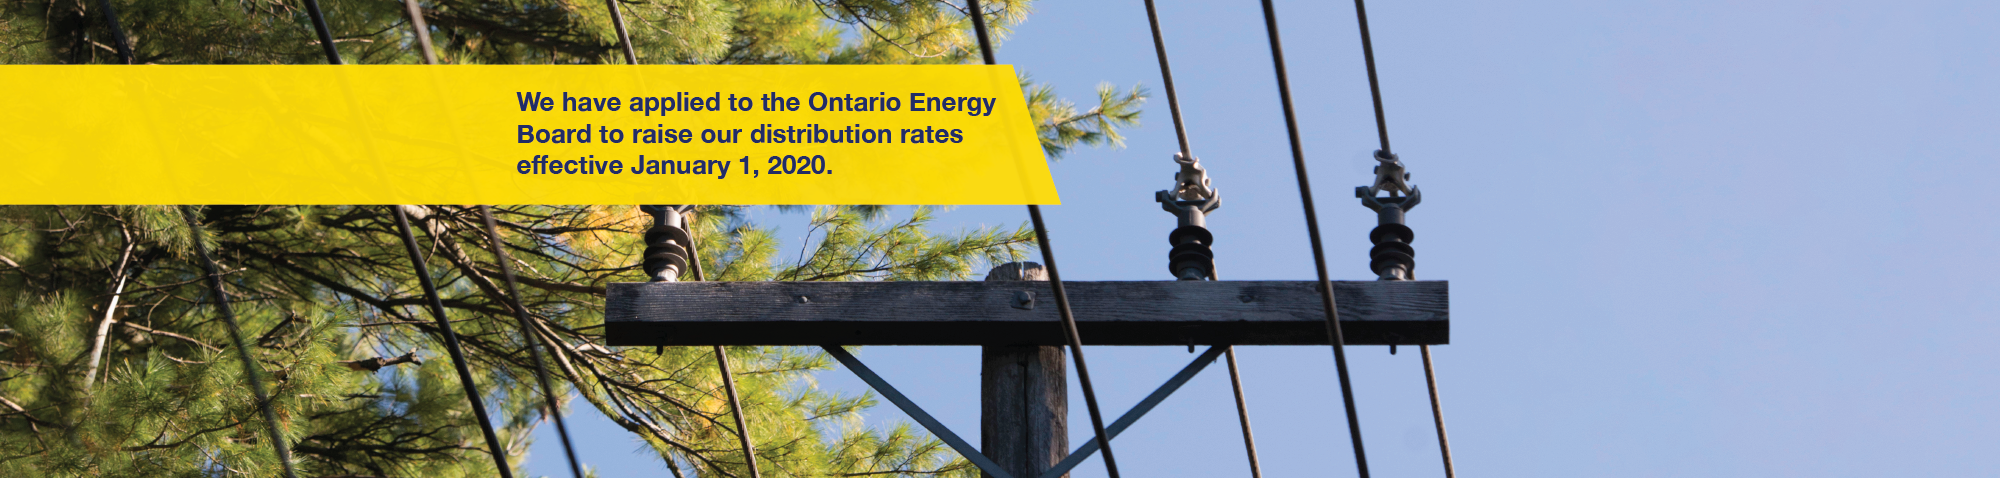 Banner image of a power pole and power lines. Text reads We have applied to the Ontario Energy Board to raise our distribution rates effective January 1, 2020.